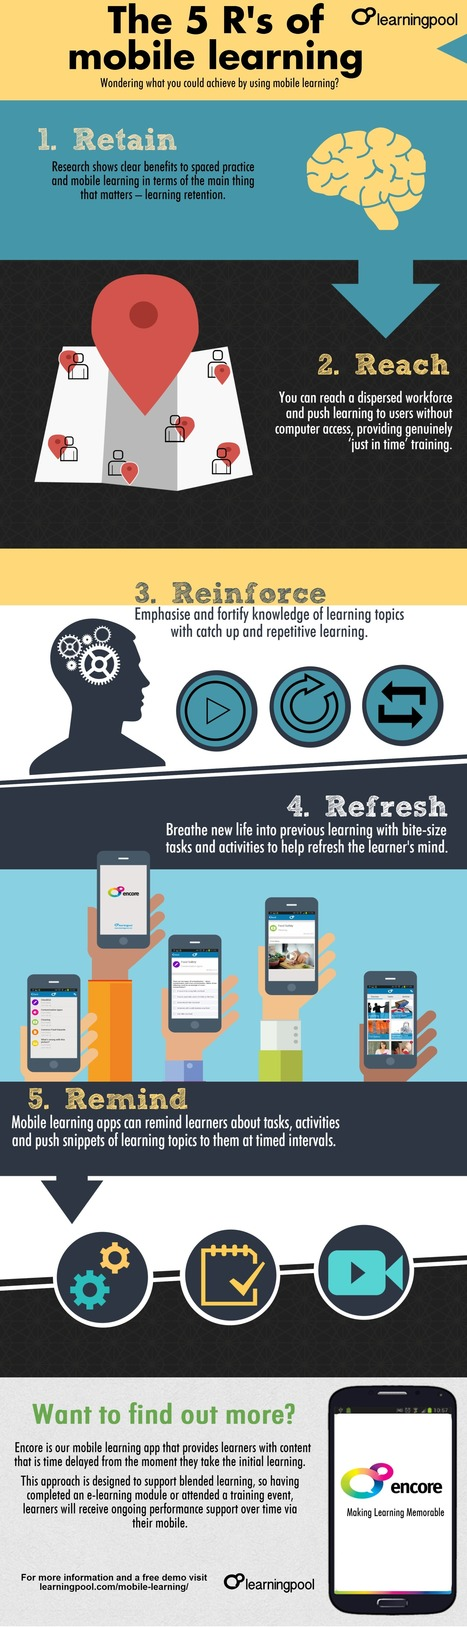 Infographic | The 5 R's of Mobile Learning | Aprendiendo a Distancia | Scoop.it